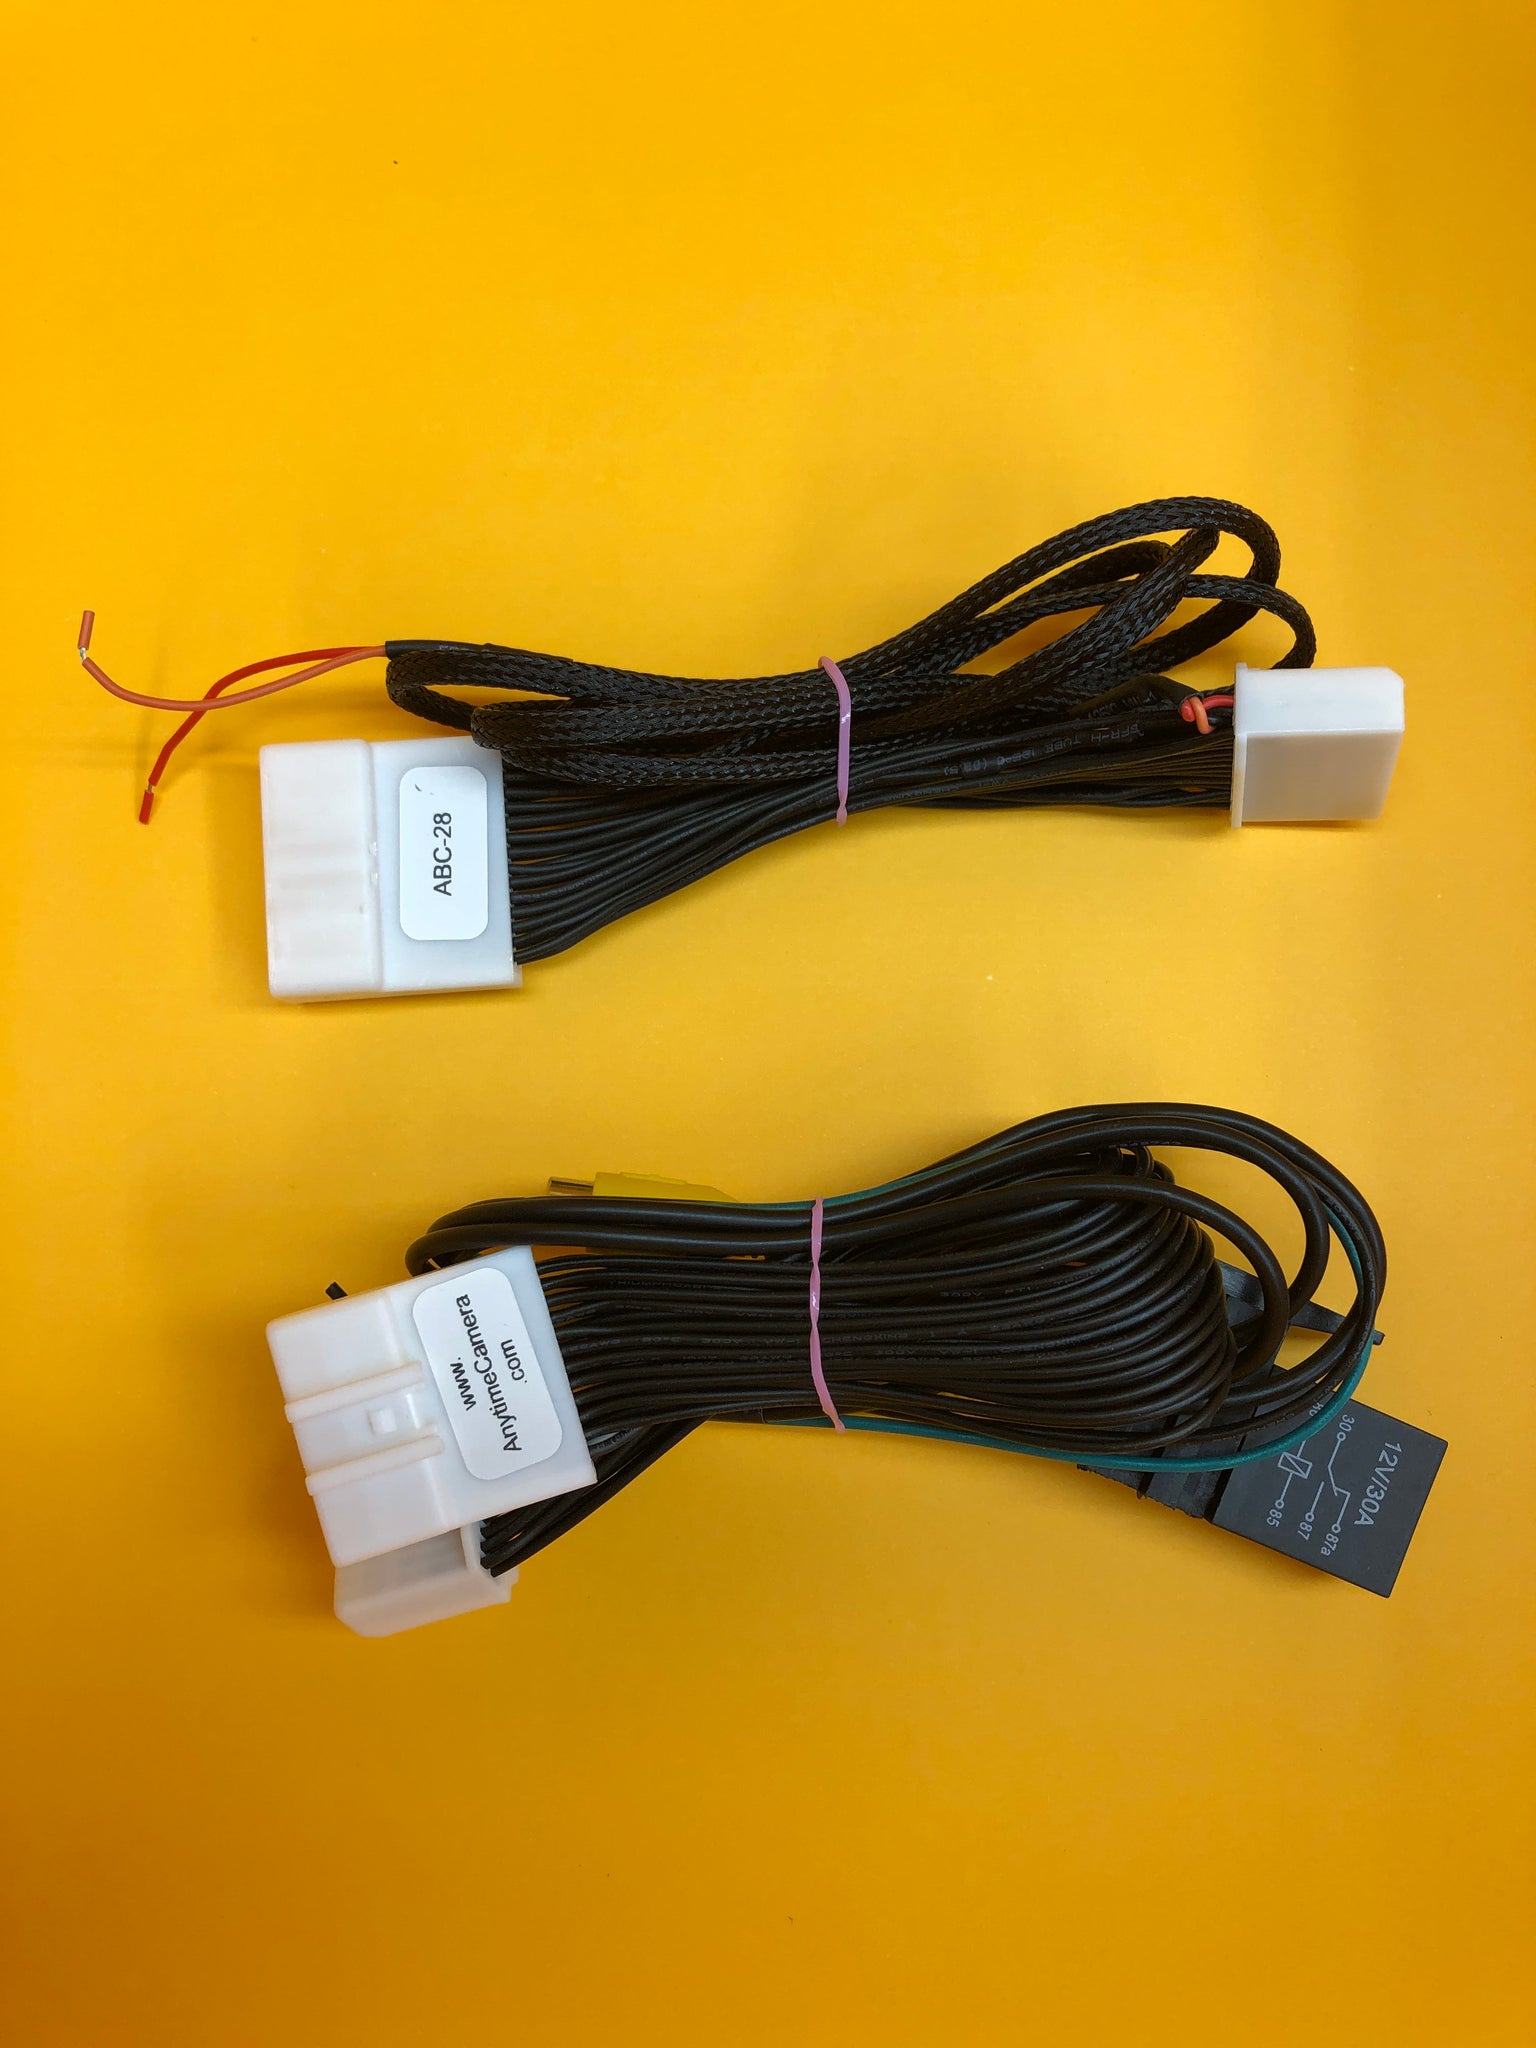 load image into gallery viewer, anytime backup camera - harness kit  components (no switch